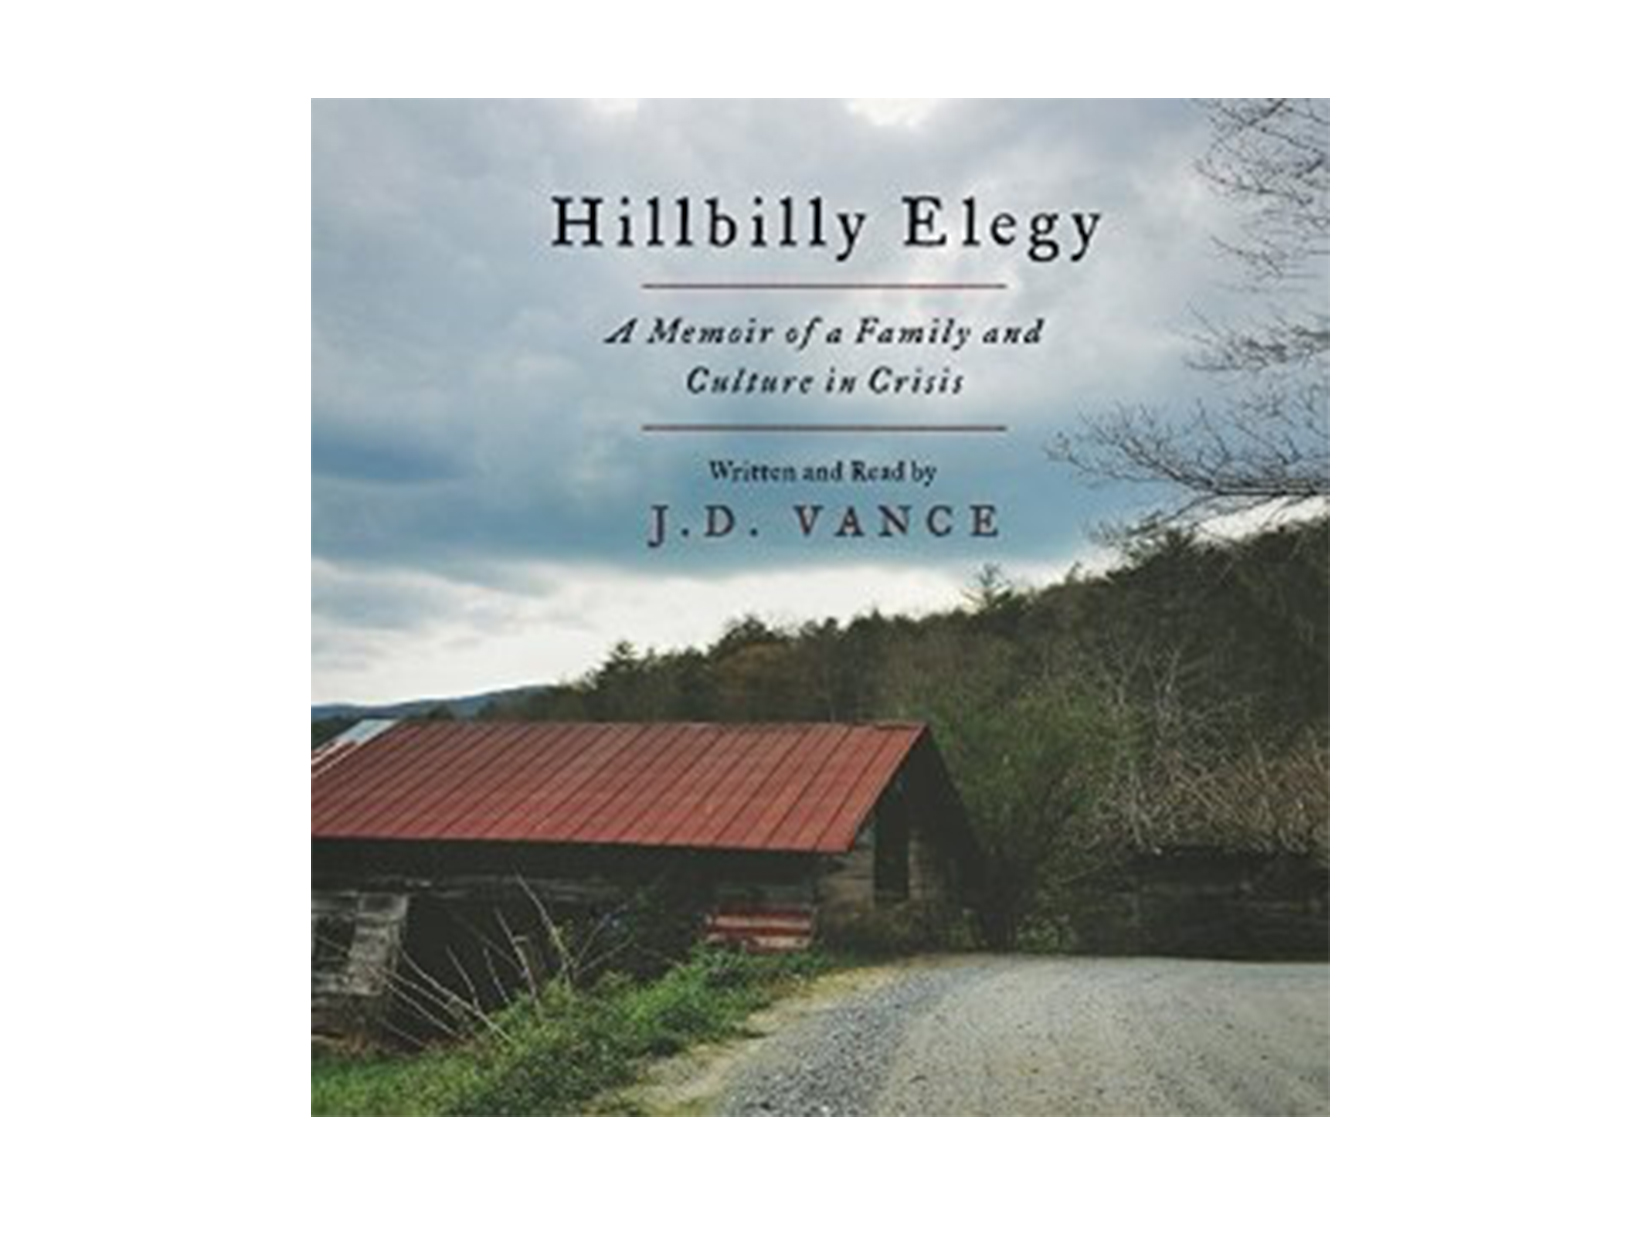 Hillbilly Elegy, written & ready by J. D. Vance